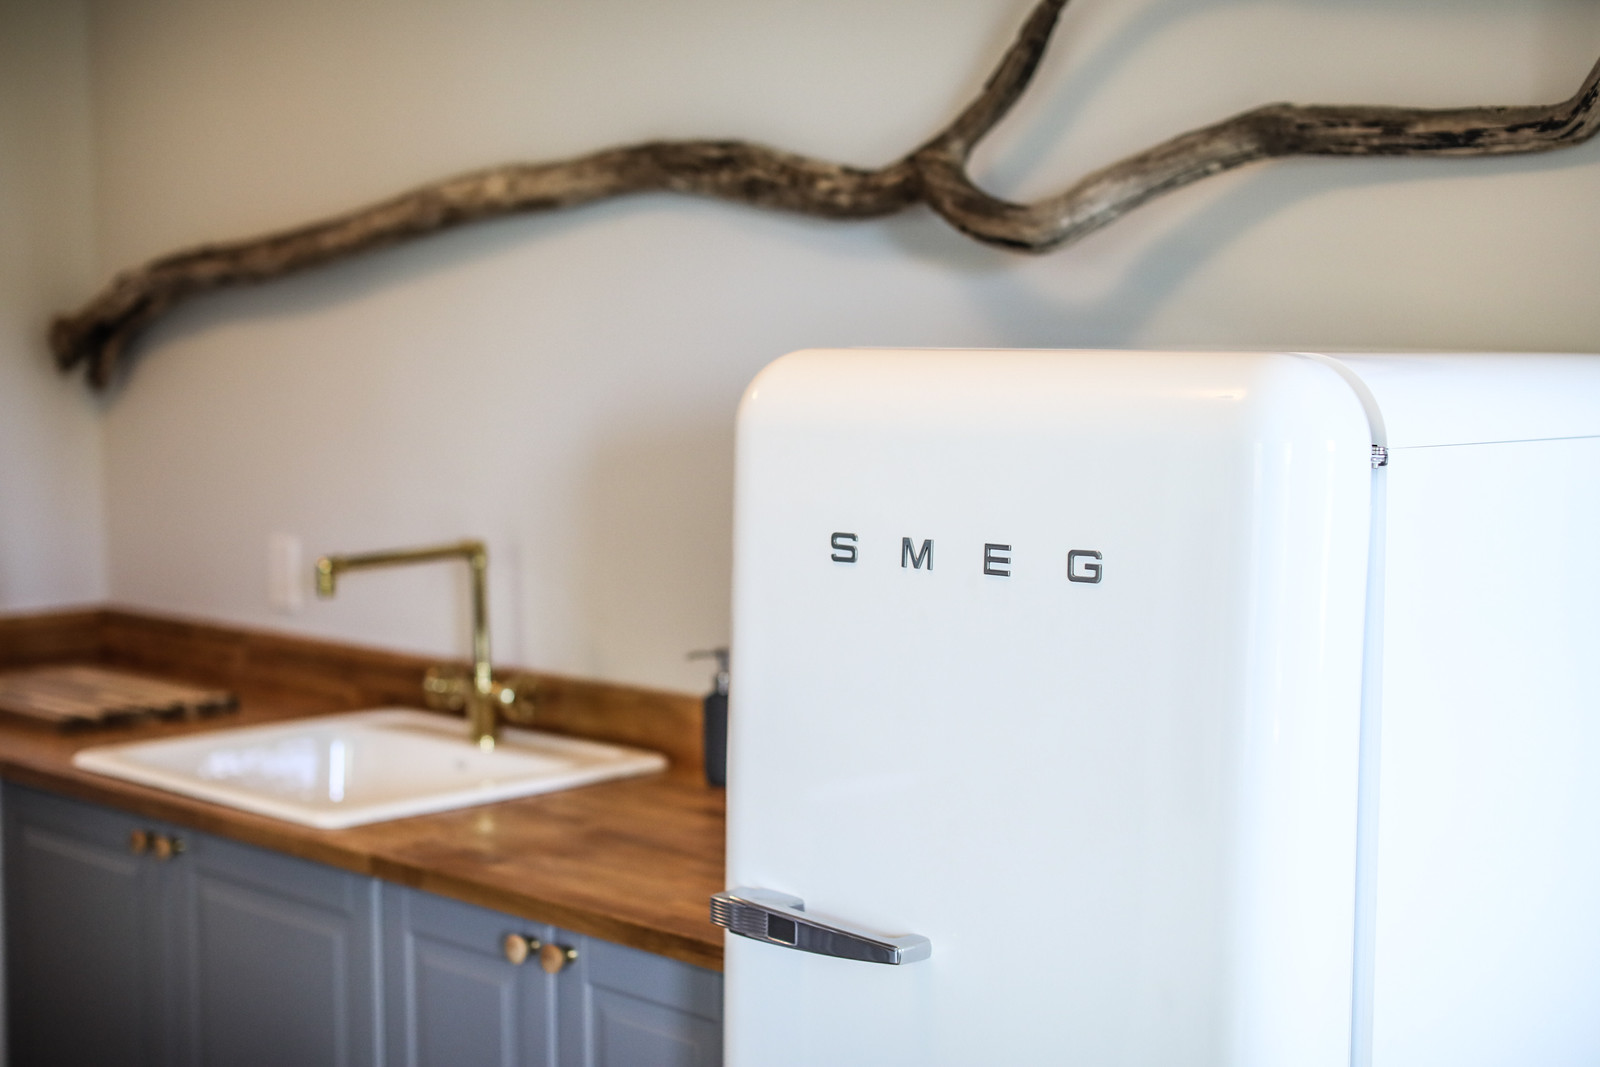 Smeg refrigerators, full kitchen, amenities, Long term stay, Corporate rental, Extended stay, Extended stay corporate housing